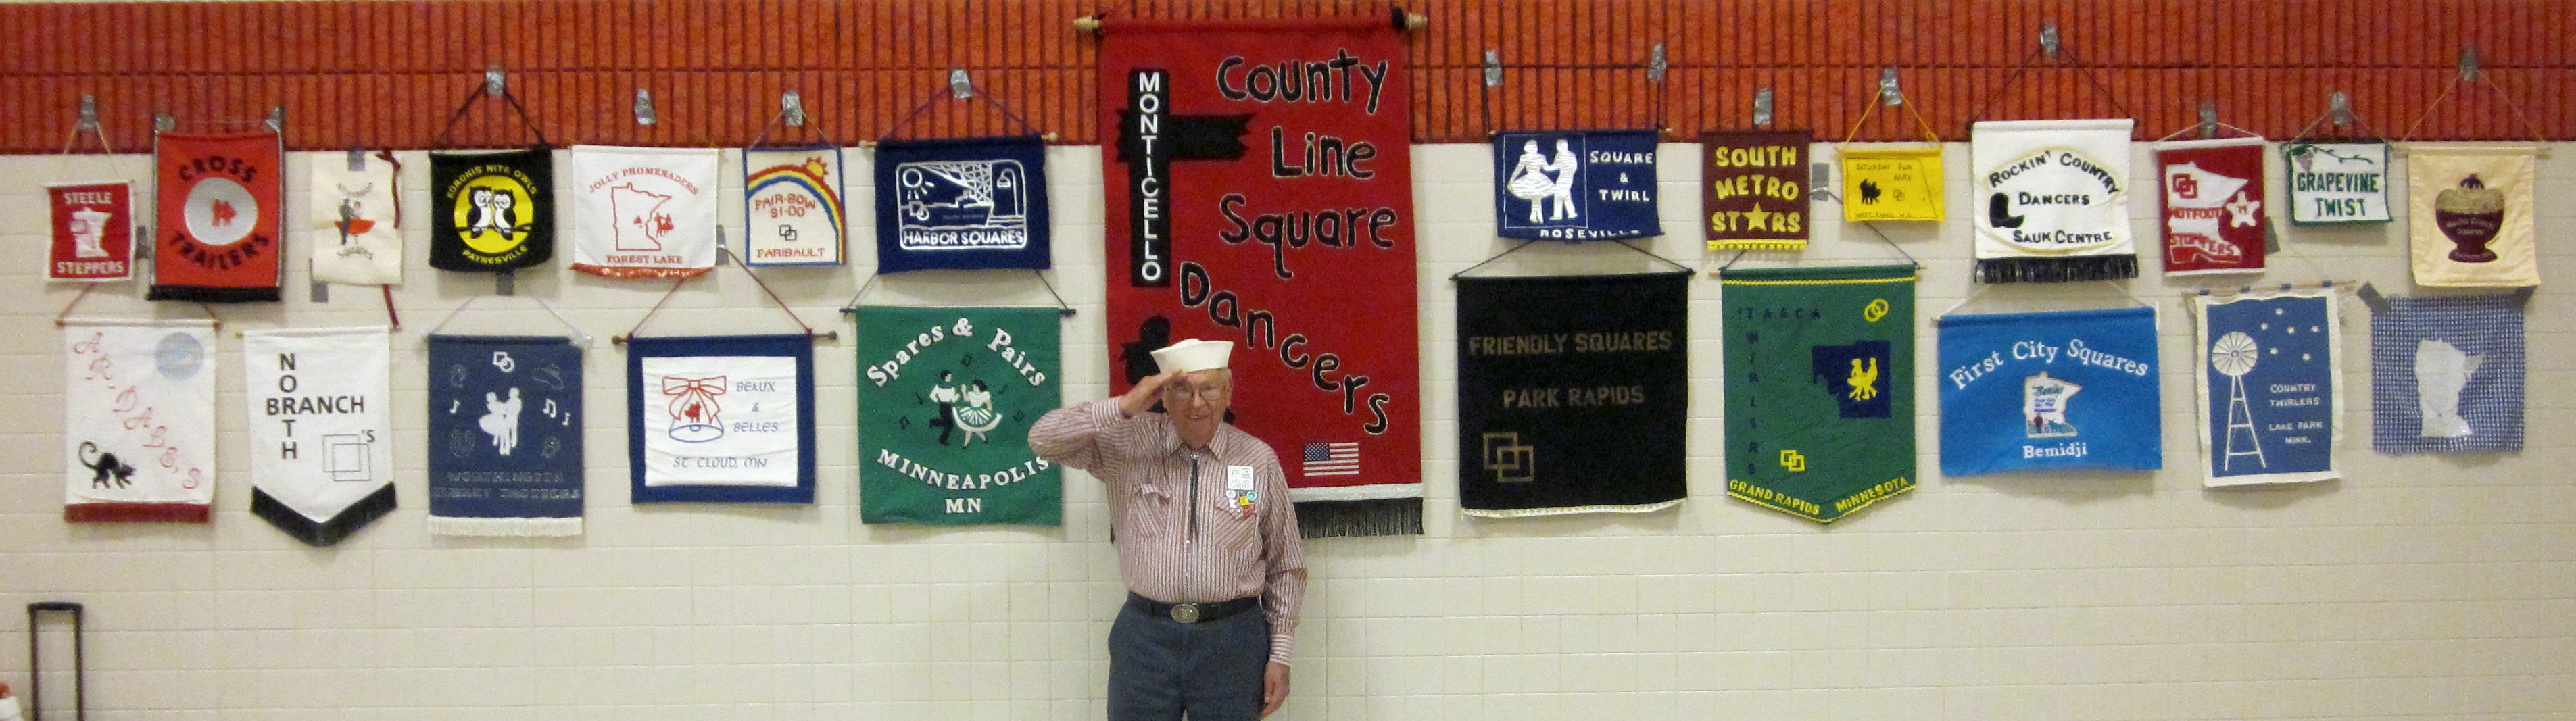 24 Banners on Display, with Willard Rendering the Salute!